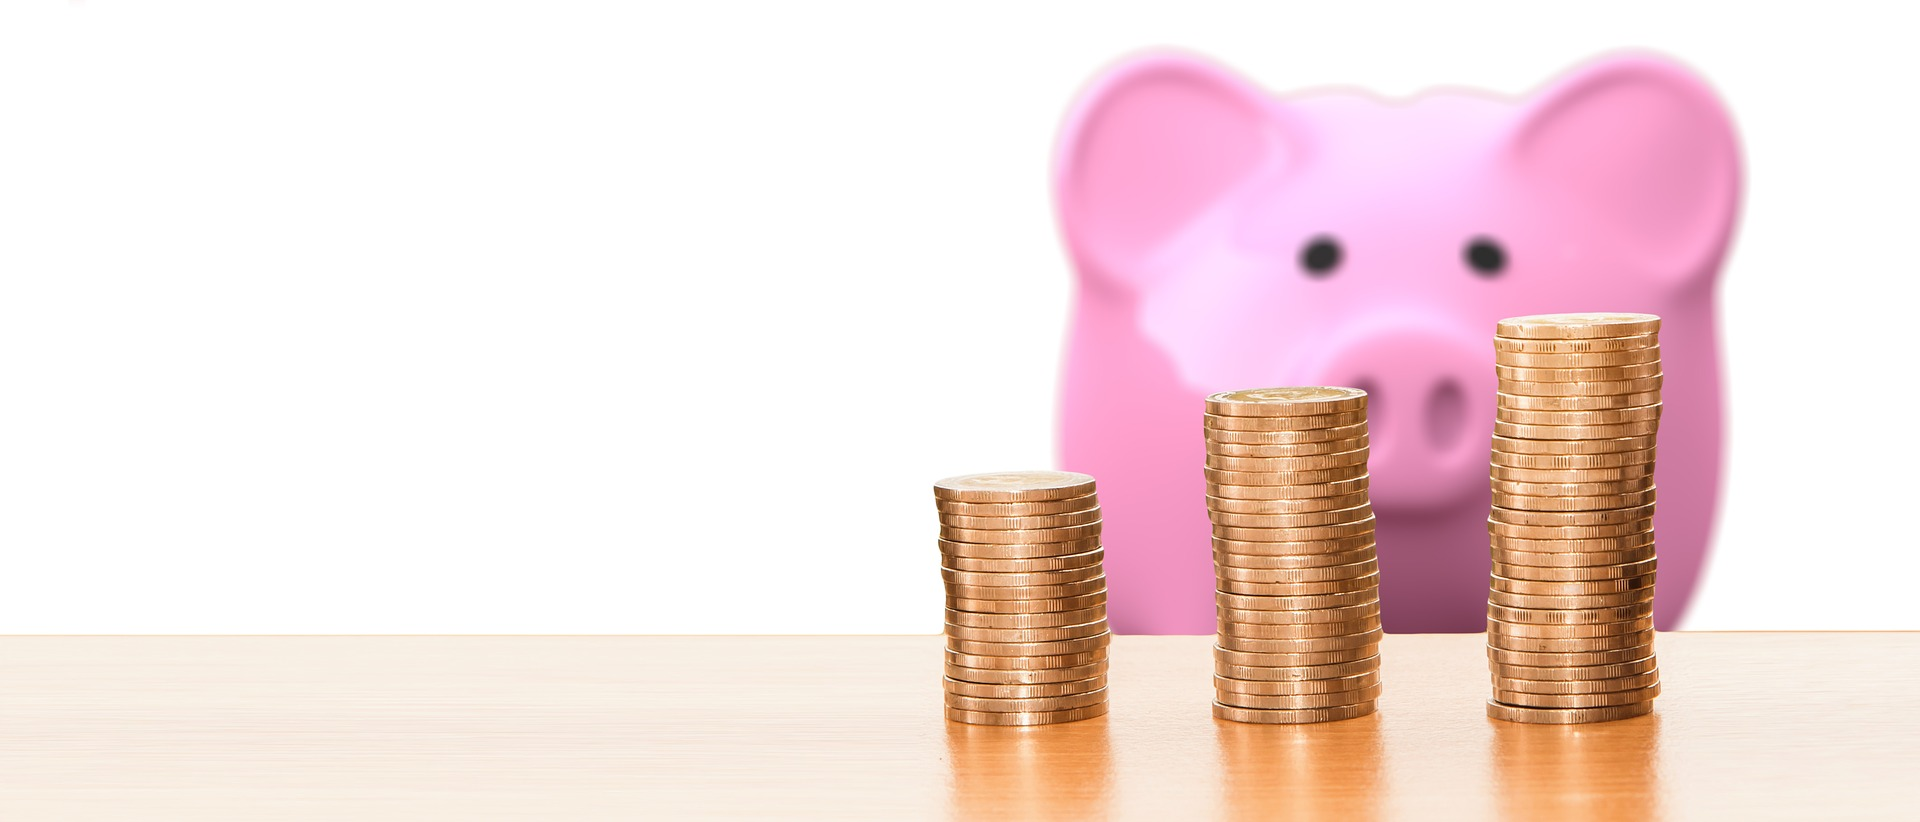 Improve Your Money Management With These 4 Steps